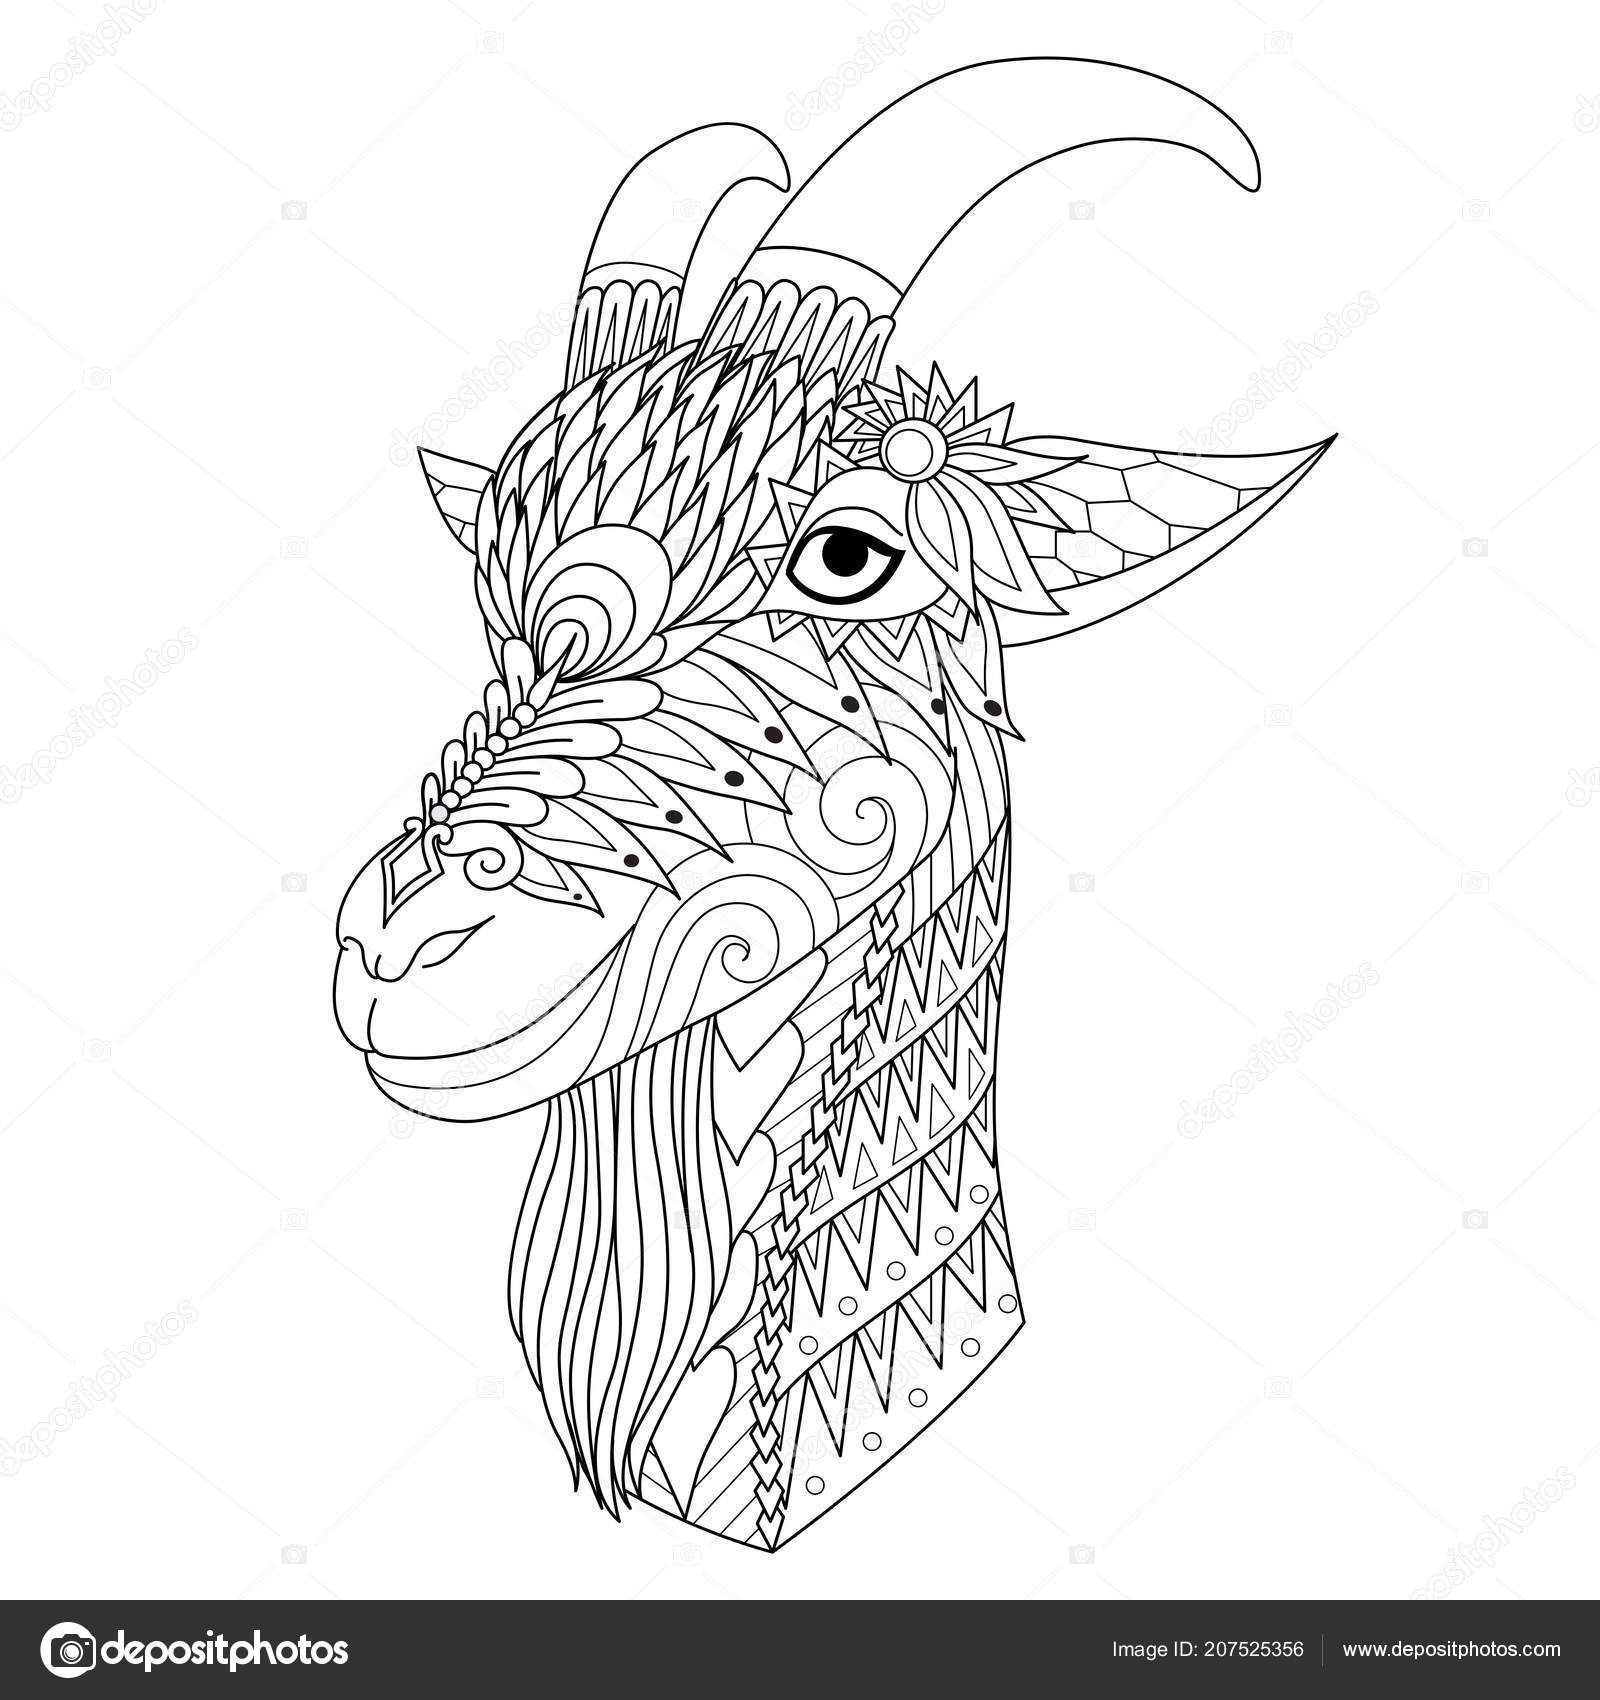 Intricate Line Art Happy Sheep Design Element Coloring Book Page